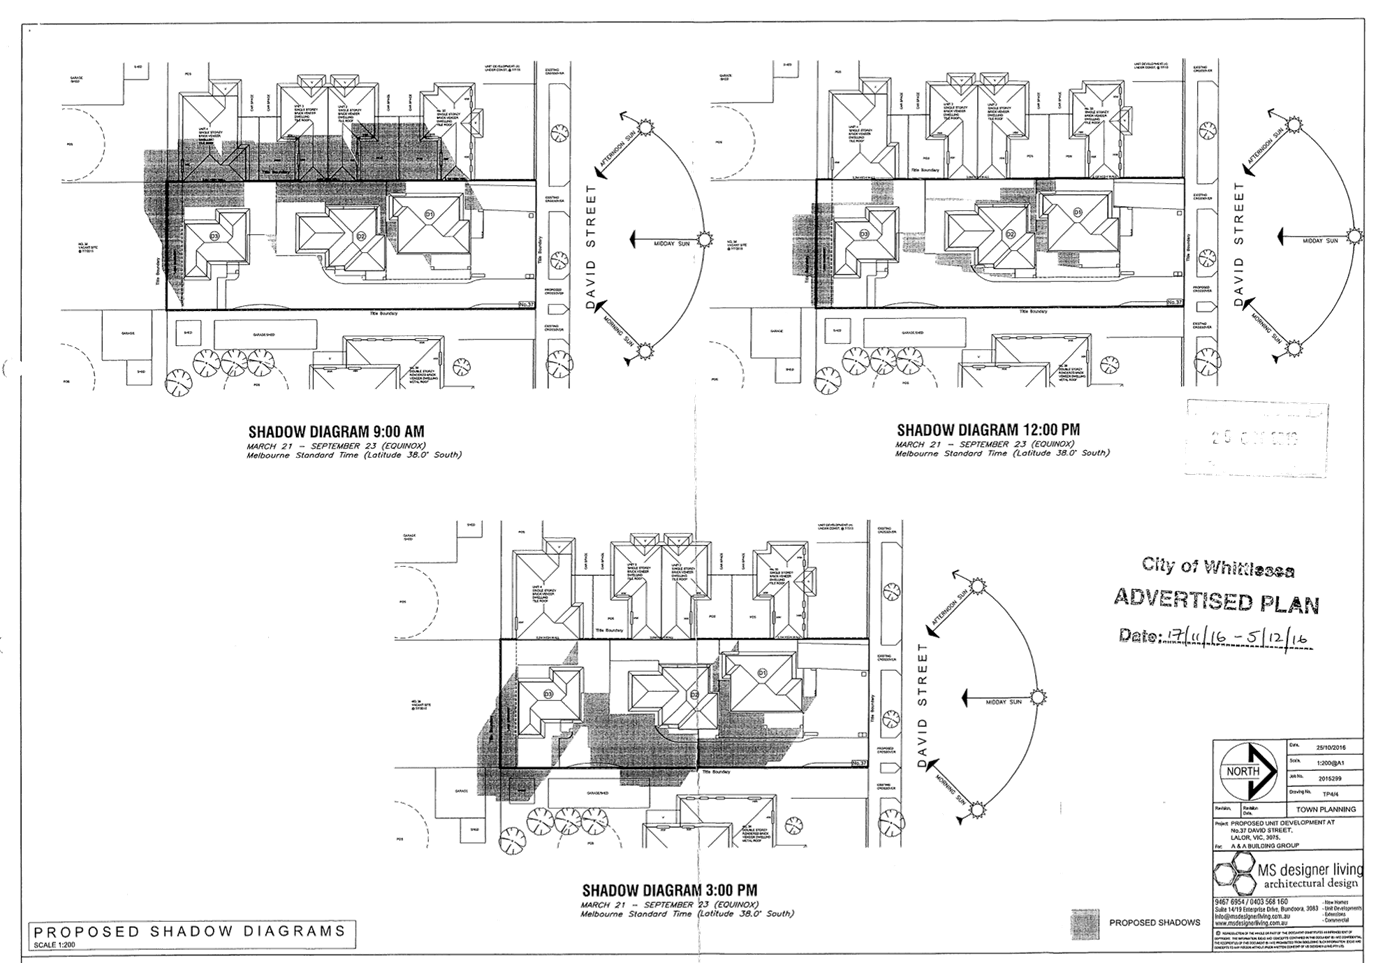 Diagram Of Shadow Wire Data Schema Briggs And Stratton 60200 Series Parts List Perth Images How To Guide Refrence Shallow Wells Installed In 1960